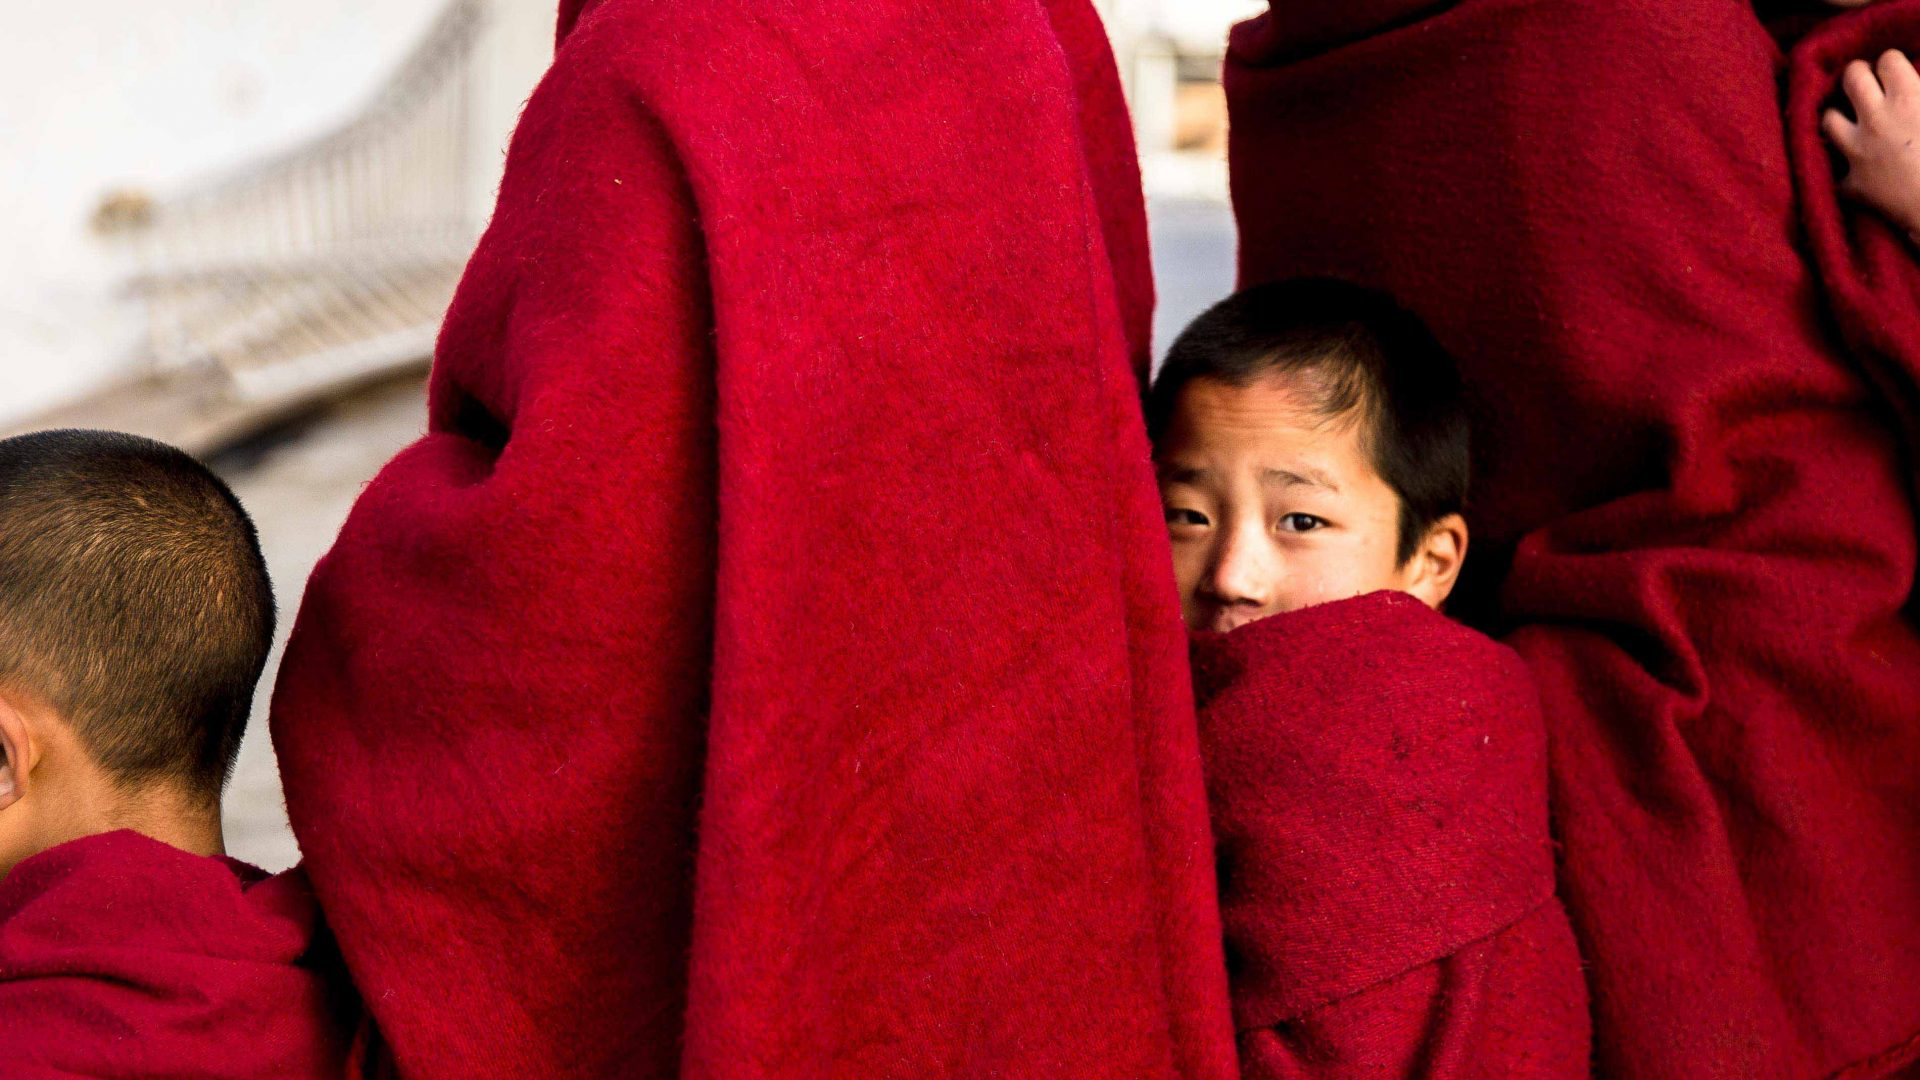 A young monk peeks thorough the robes of his elders while queuing for breakfast at the Tawang Monastery, Arunachal Pradesh, India.